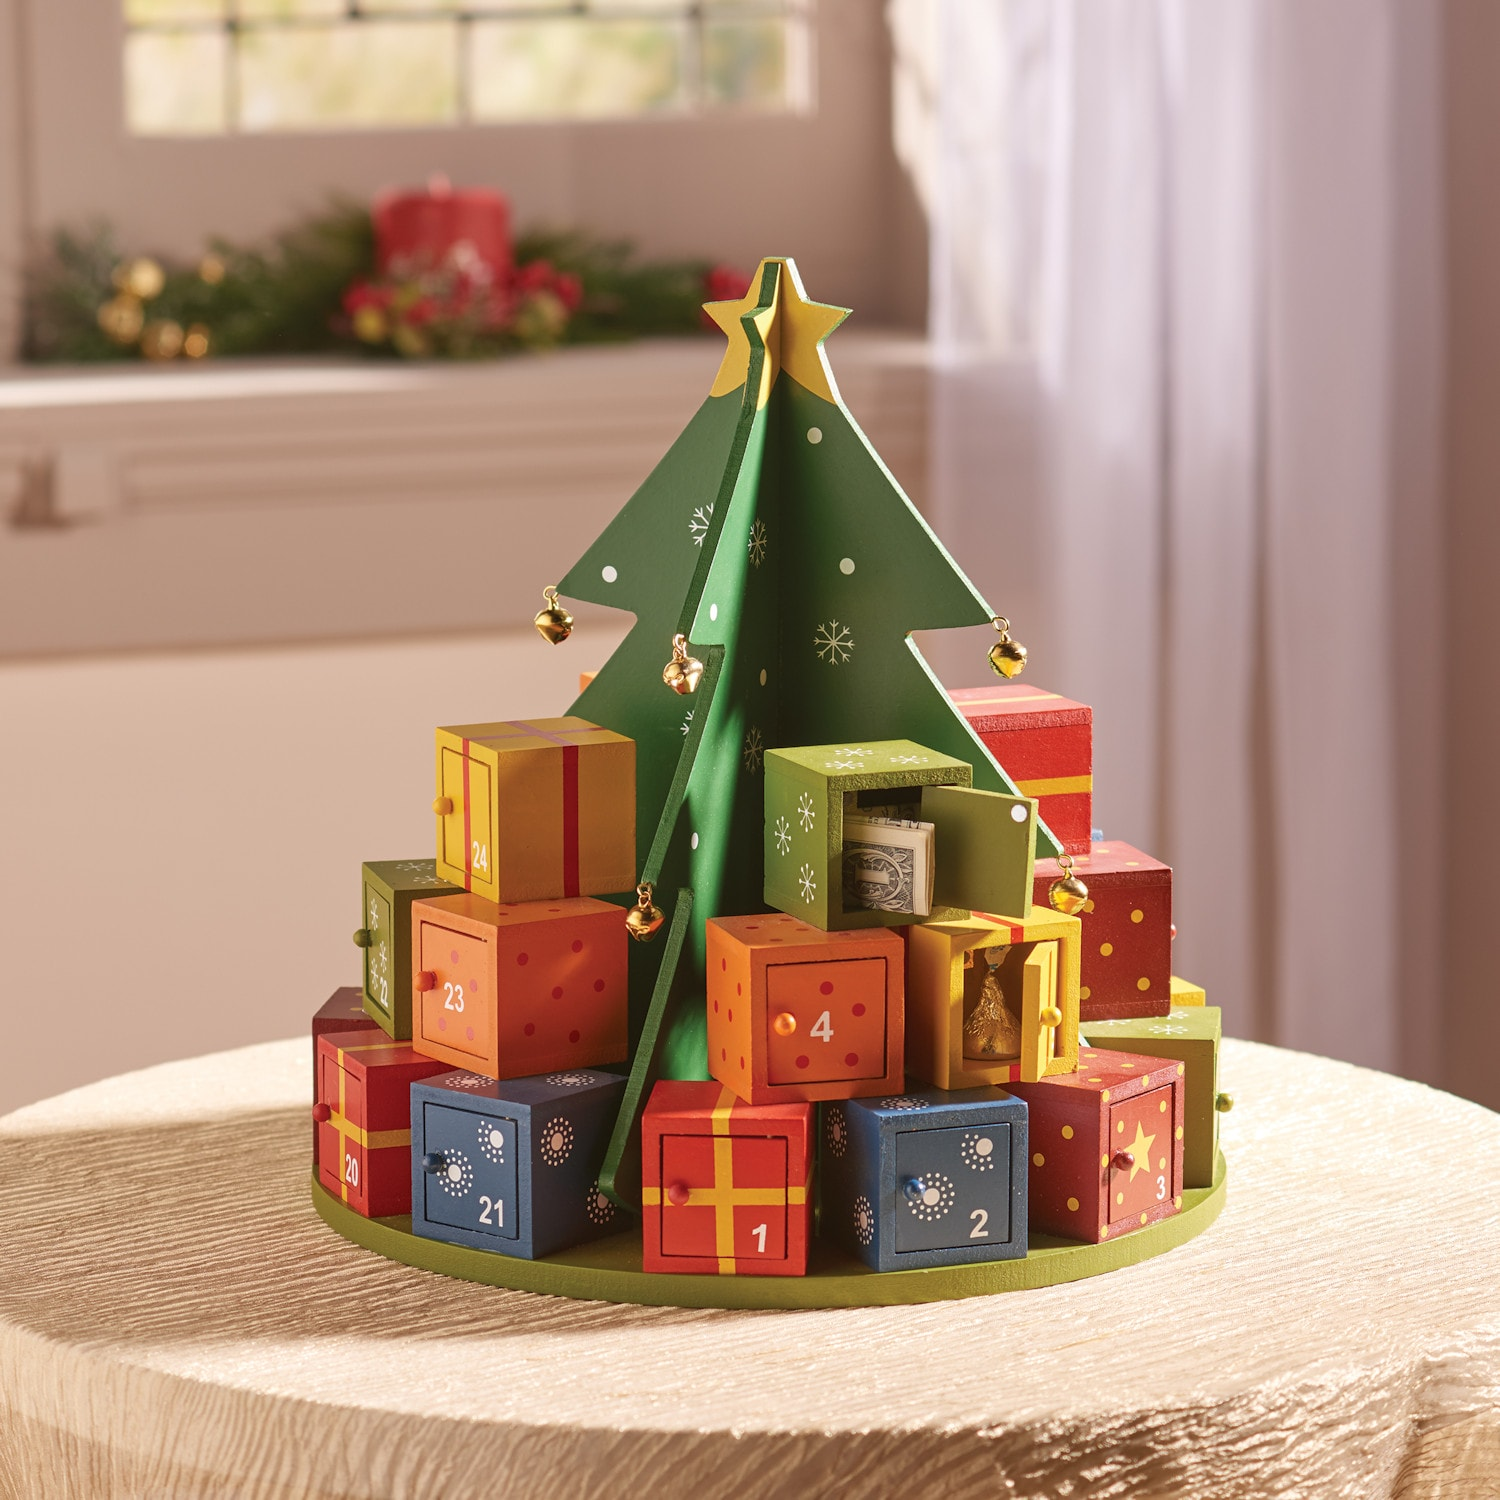 Wooden Christmas Tree Advent Calendar Holiday Countdown Tree 24 Numbered Boxes Ebay